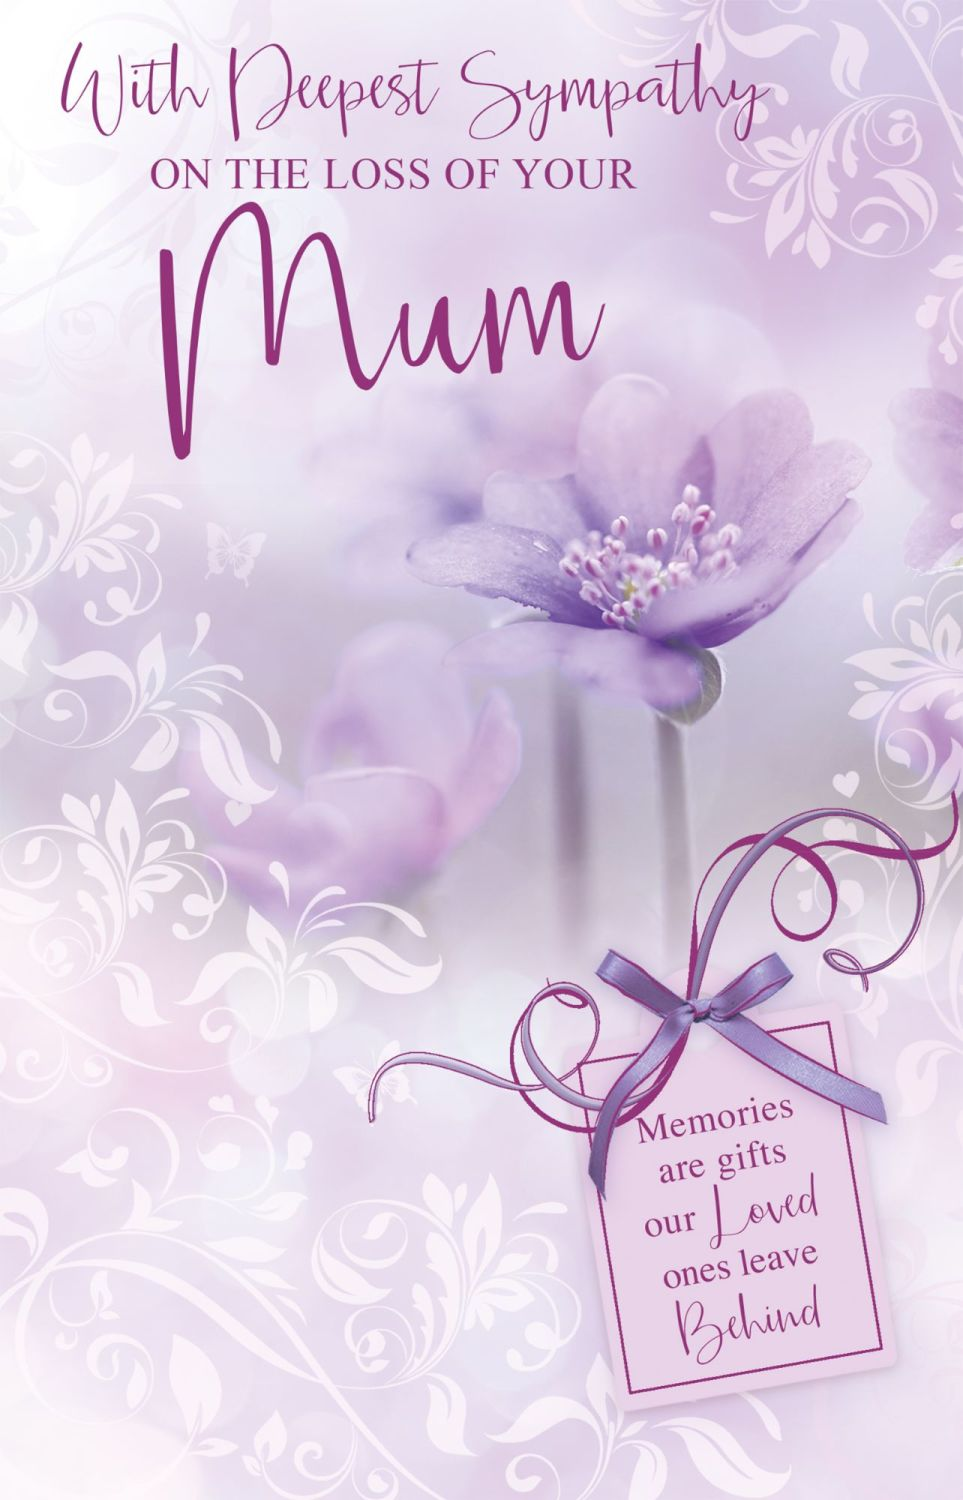 With Deepest Sympathy Card -  MEMORIES Are GIFTS - LOSS Of MUM Cards - SYMP